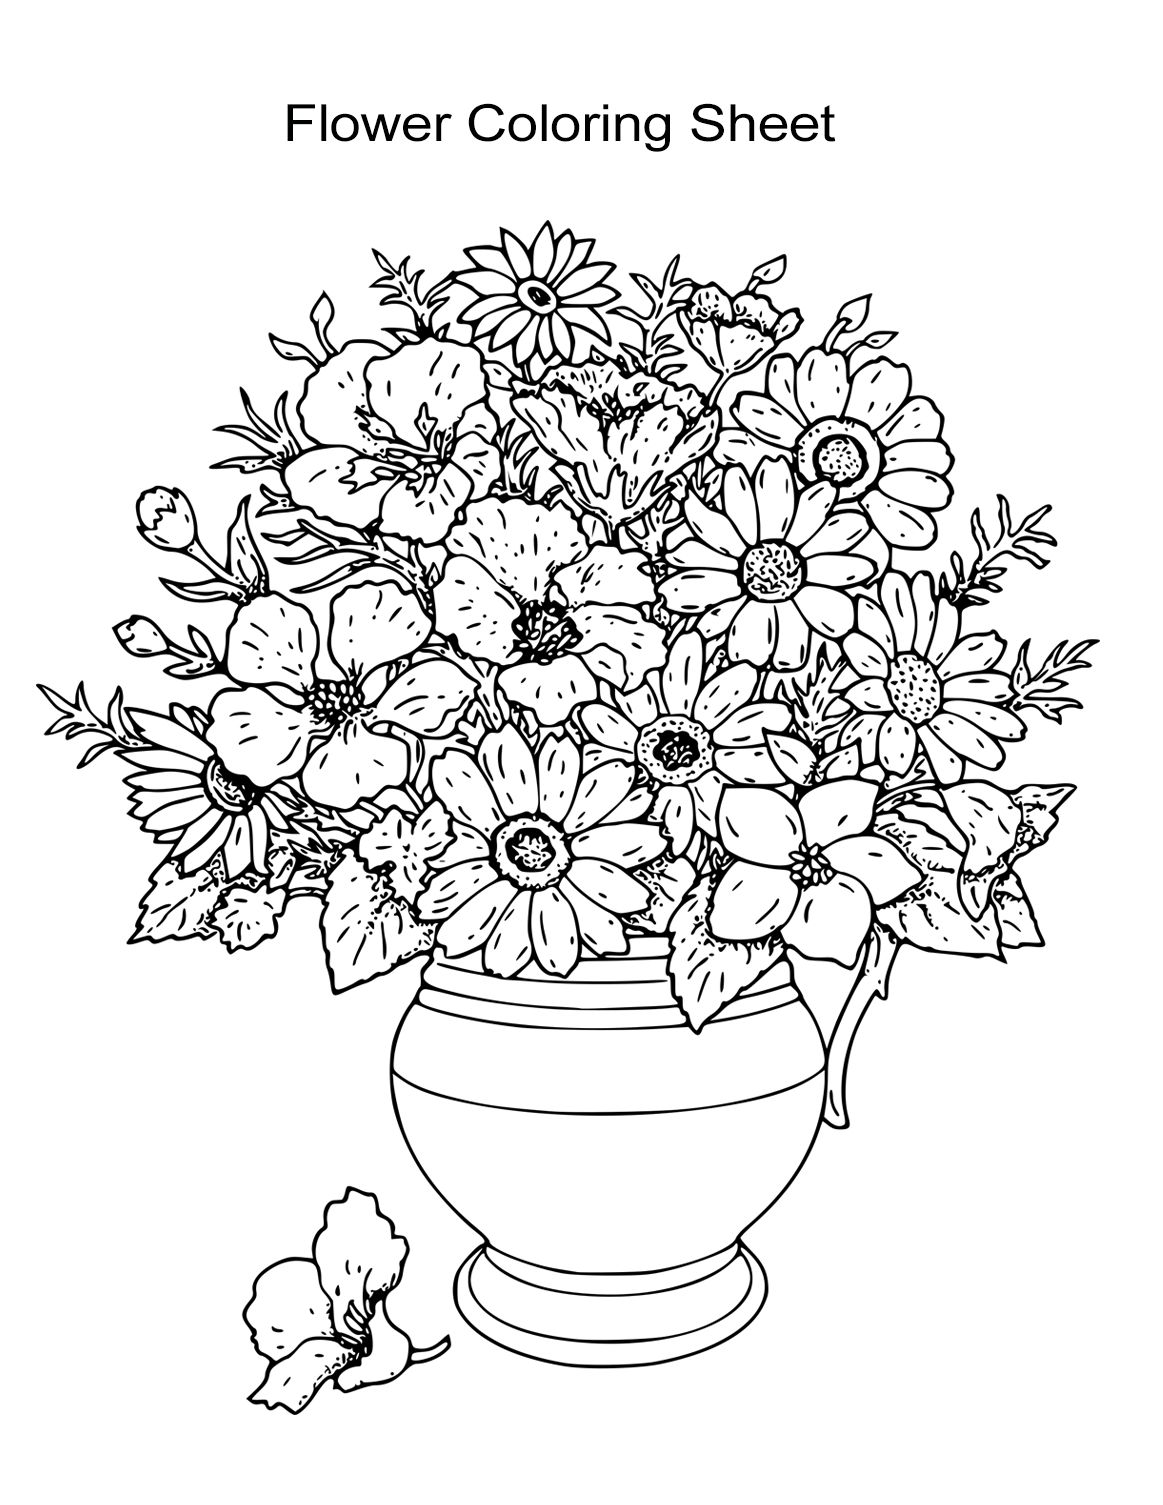 flower coloring books free printable flower coloring pages for kids best flower coloring books 1 1